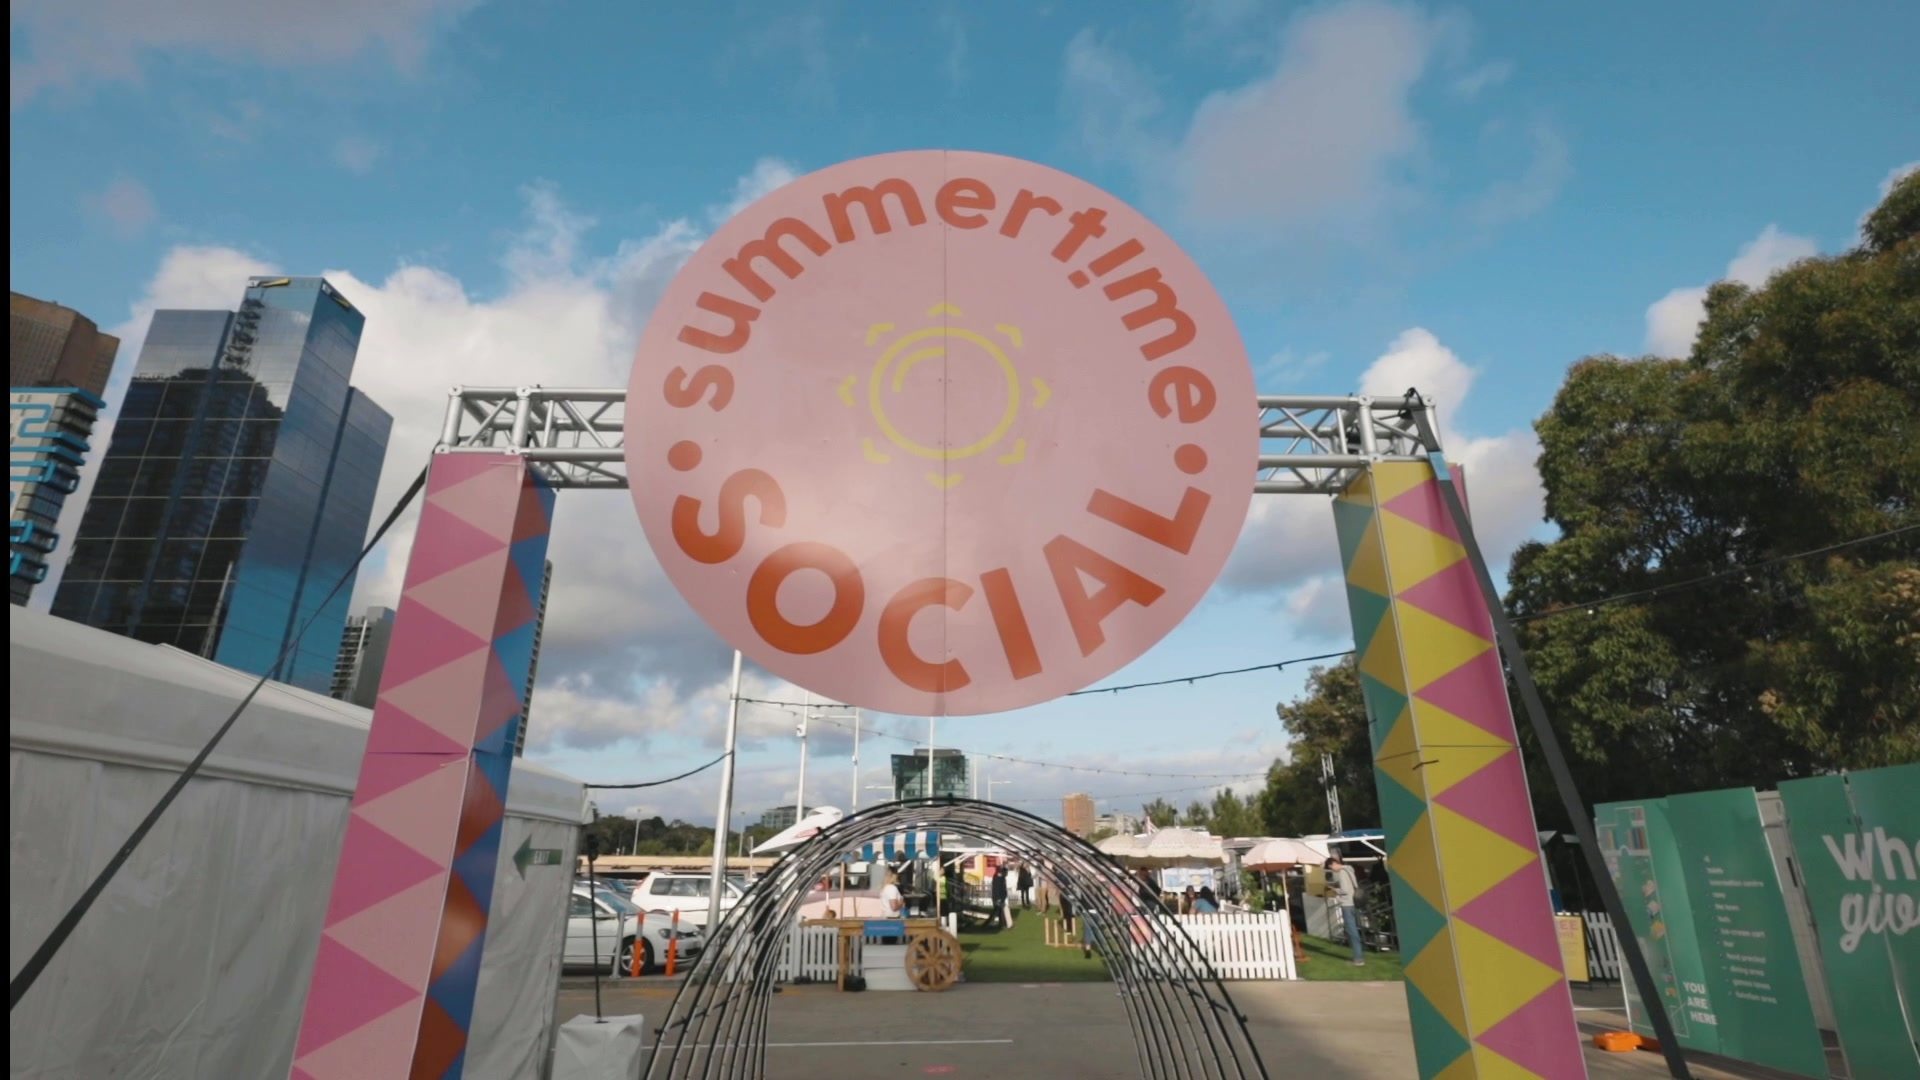 SUMMERTIME SOCIAL | PROJECTS 910